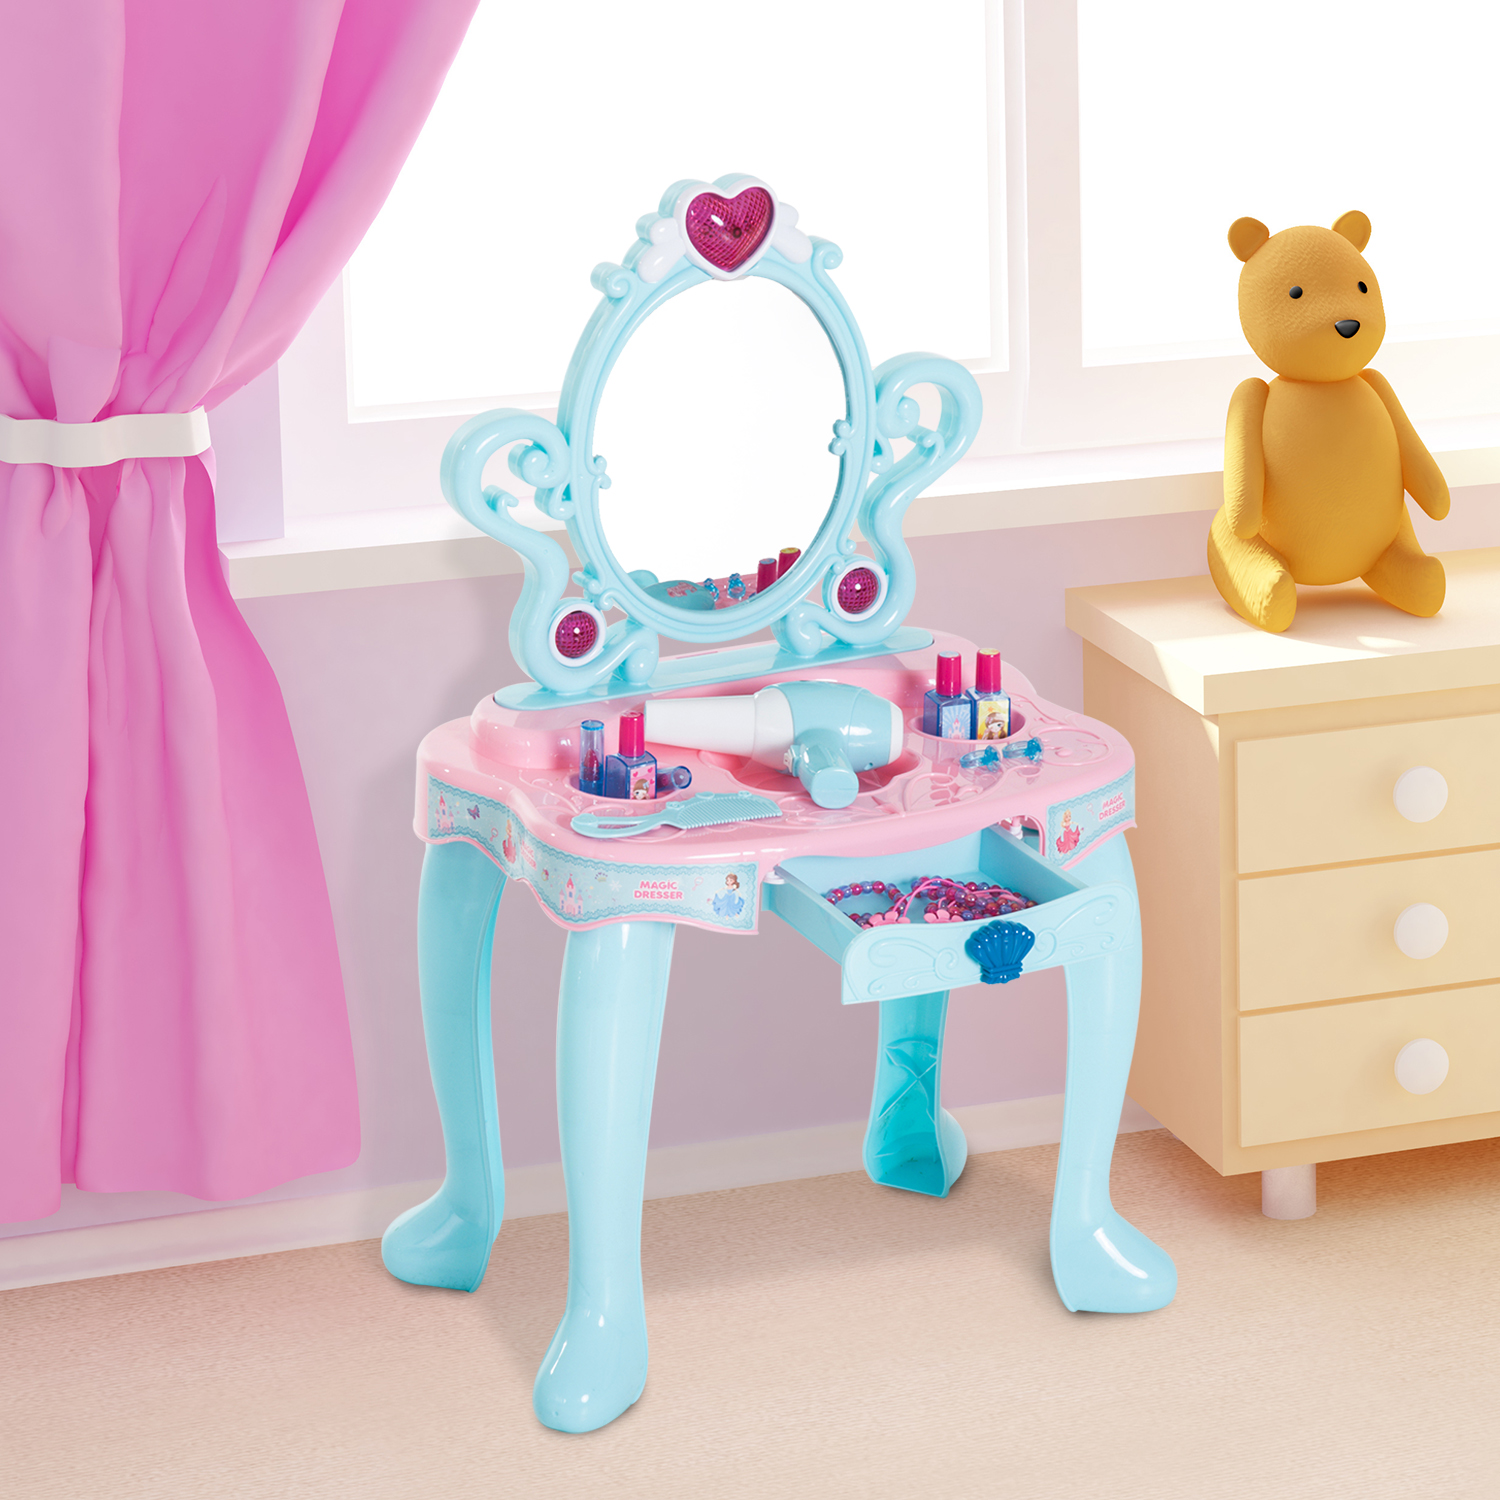 buy online 306f8 b6973 Details about Kids Pretend Play Vanity Table Dressing Makeup Accessories  Beauty Set w/ Mirror